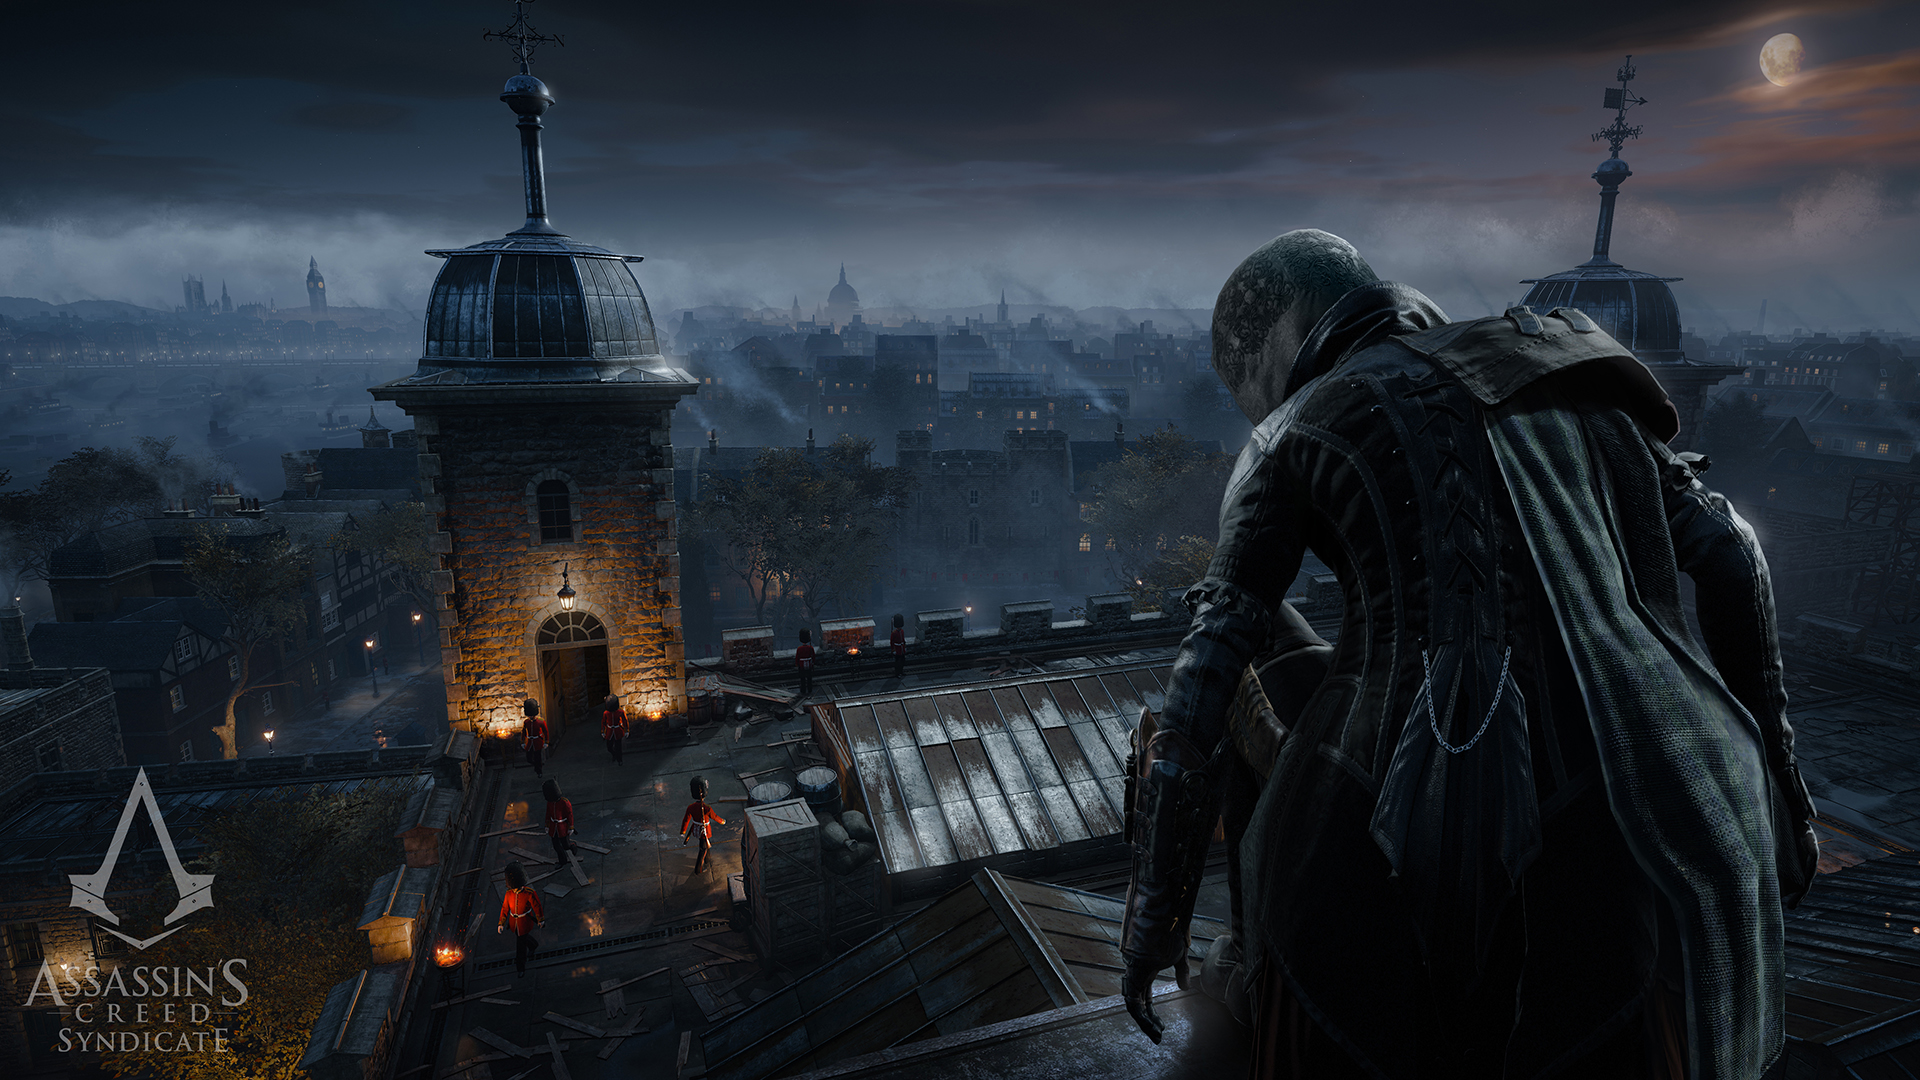 Assassin's Creed Syndicate free on Epic Games Store to ...